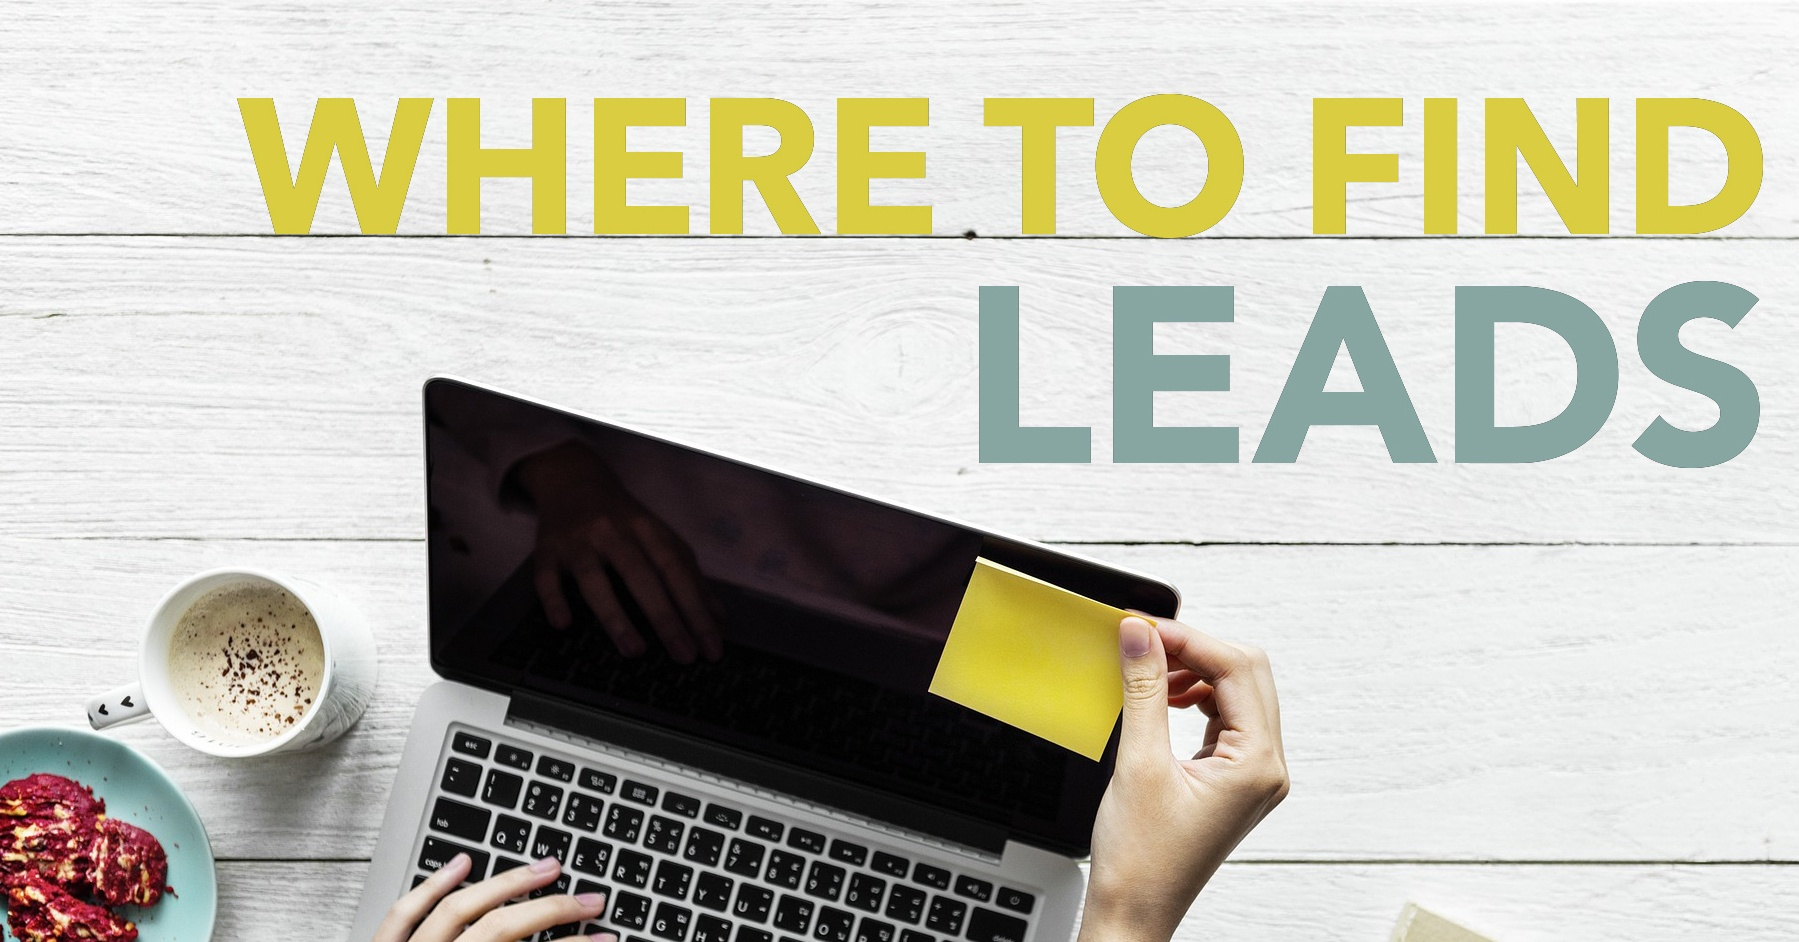 Which is the best website to find or buy leads for your